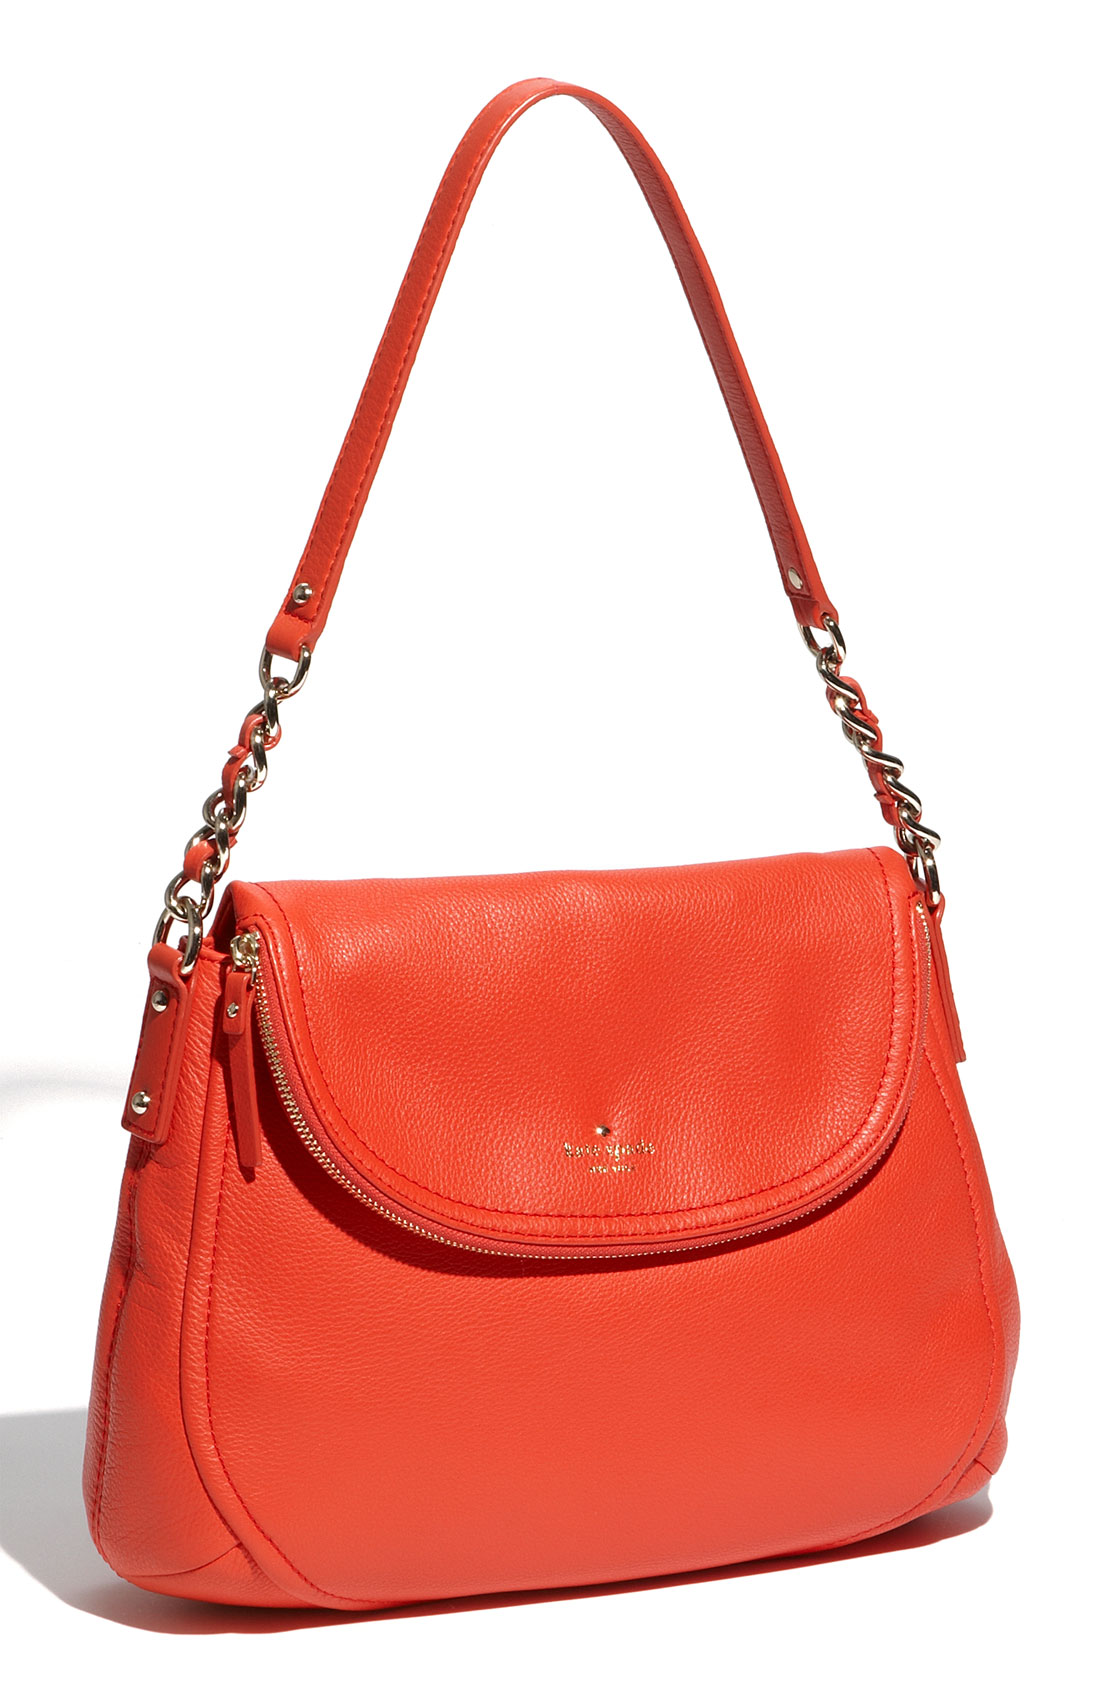 Free shipping on Tory Burch at maump3.ml Shop for clothing, shoes and accessories. Totally free shipping & returns.